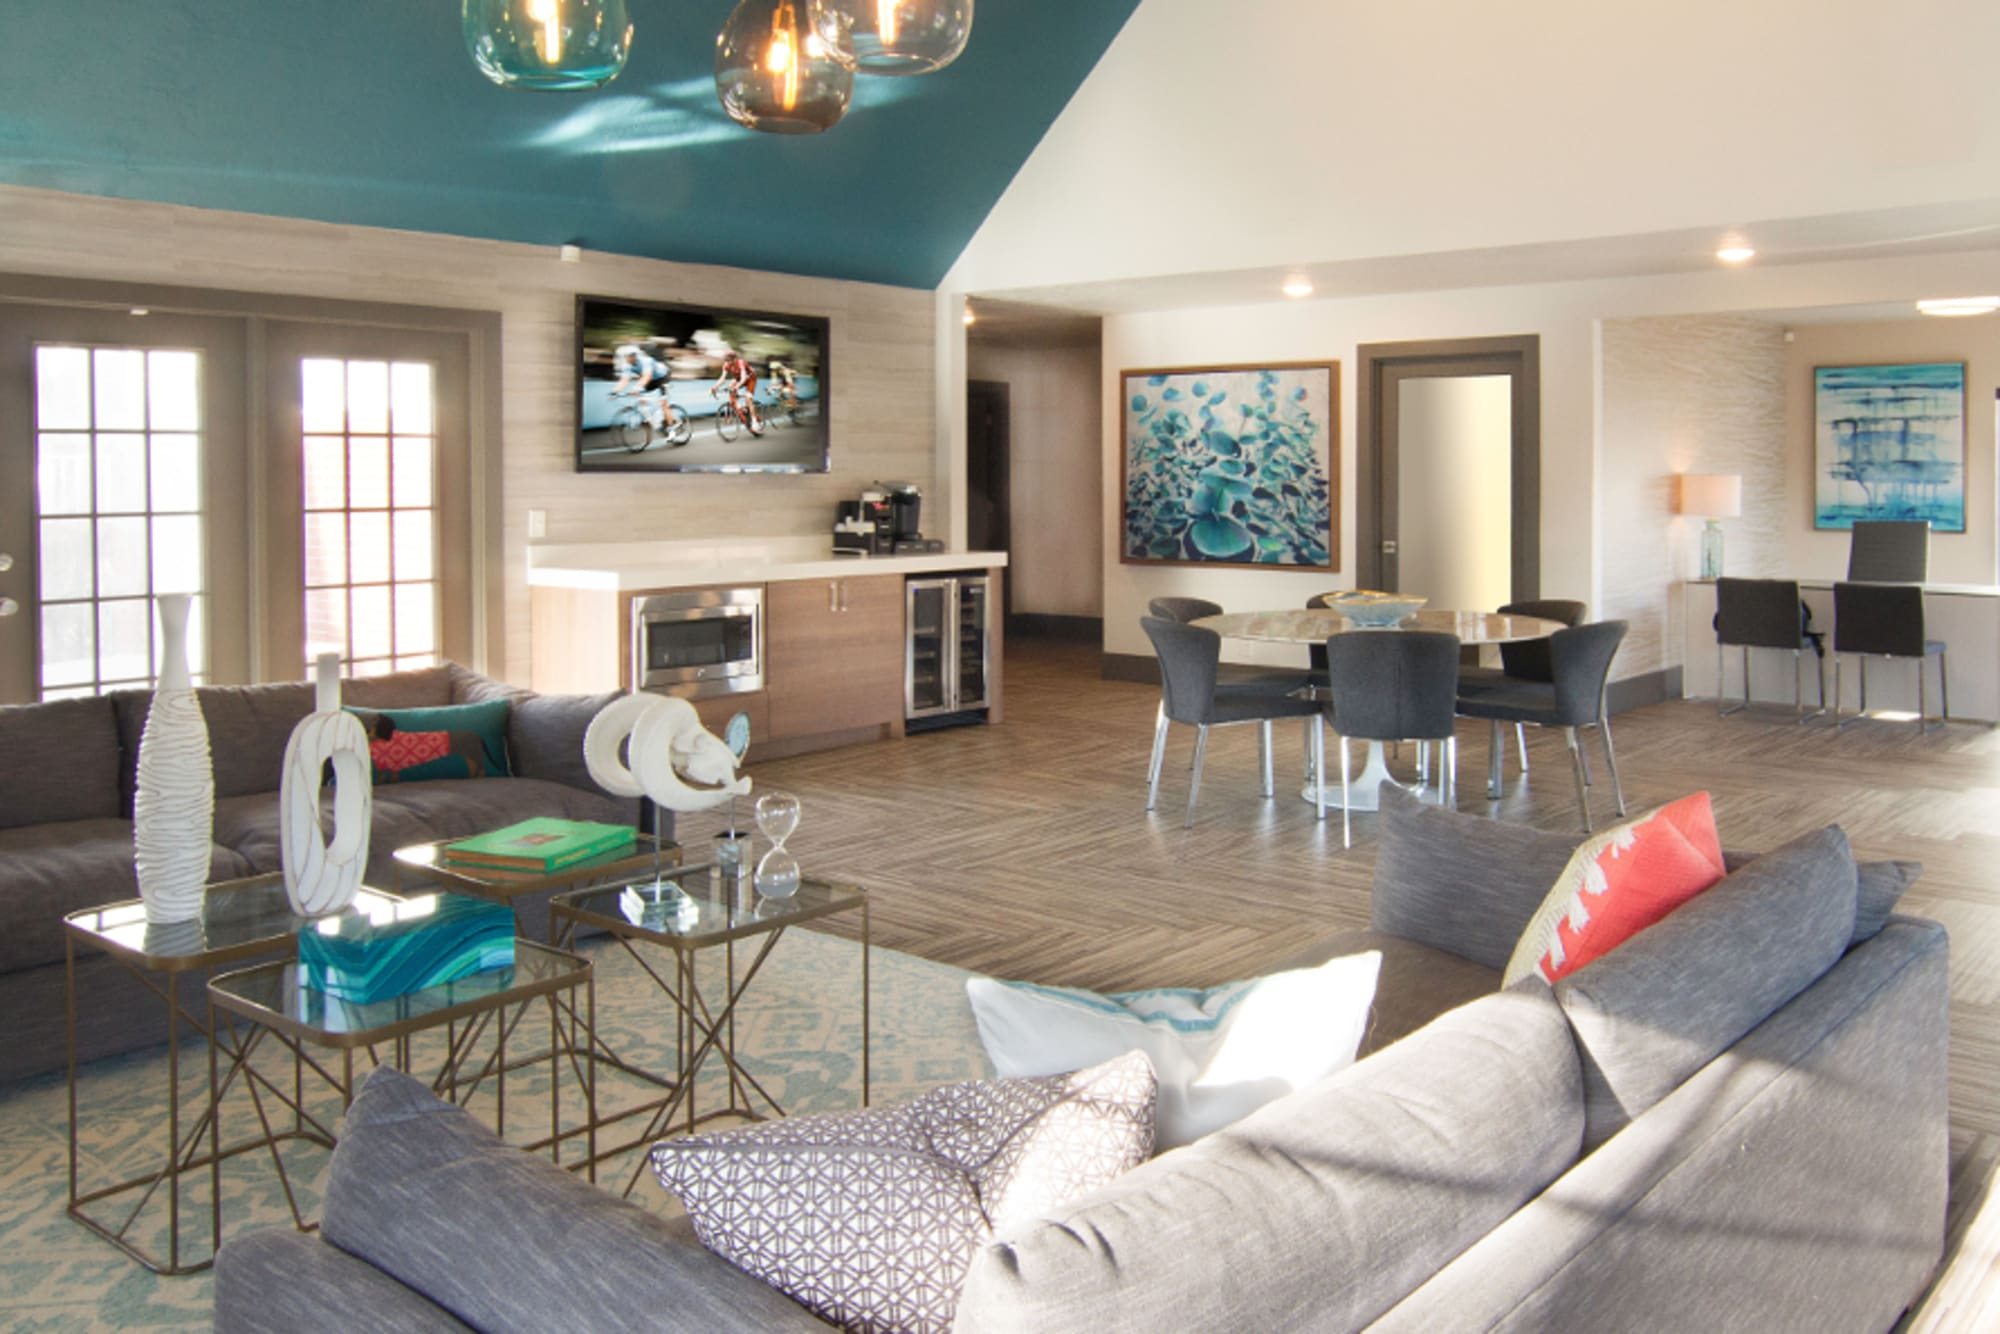 A spacious clubhouse for residents and their guests to enjoy at Windgate Apartments in Bountiful, Utah